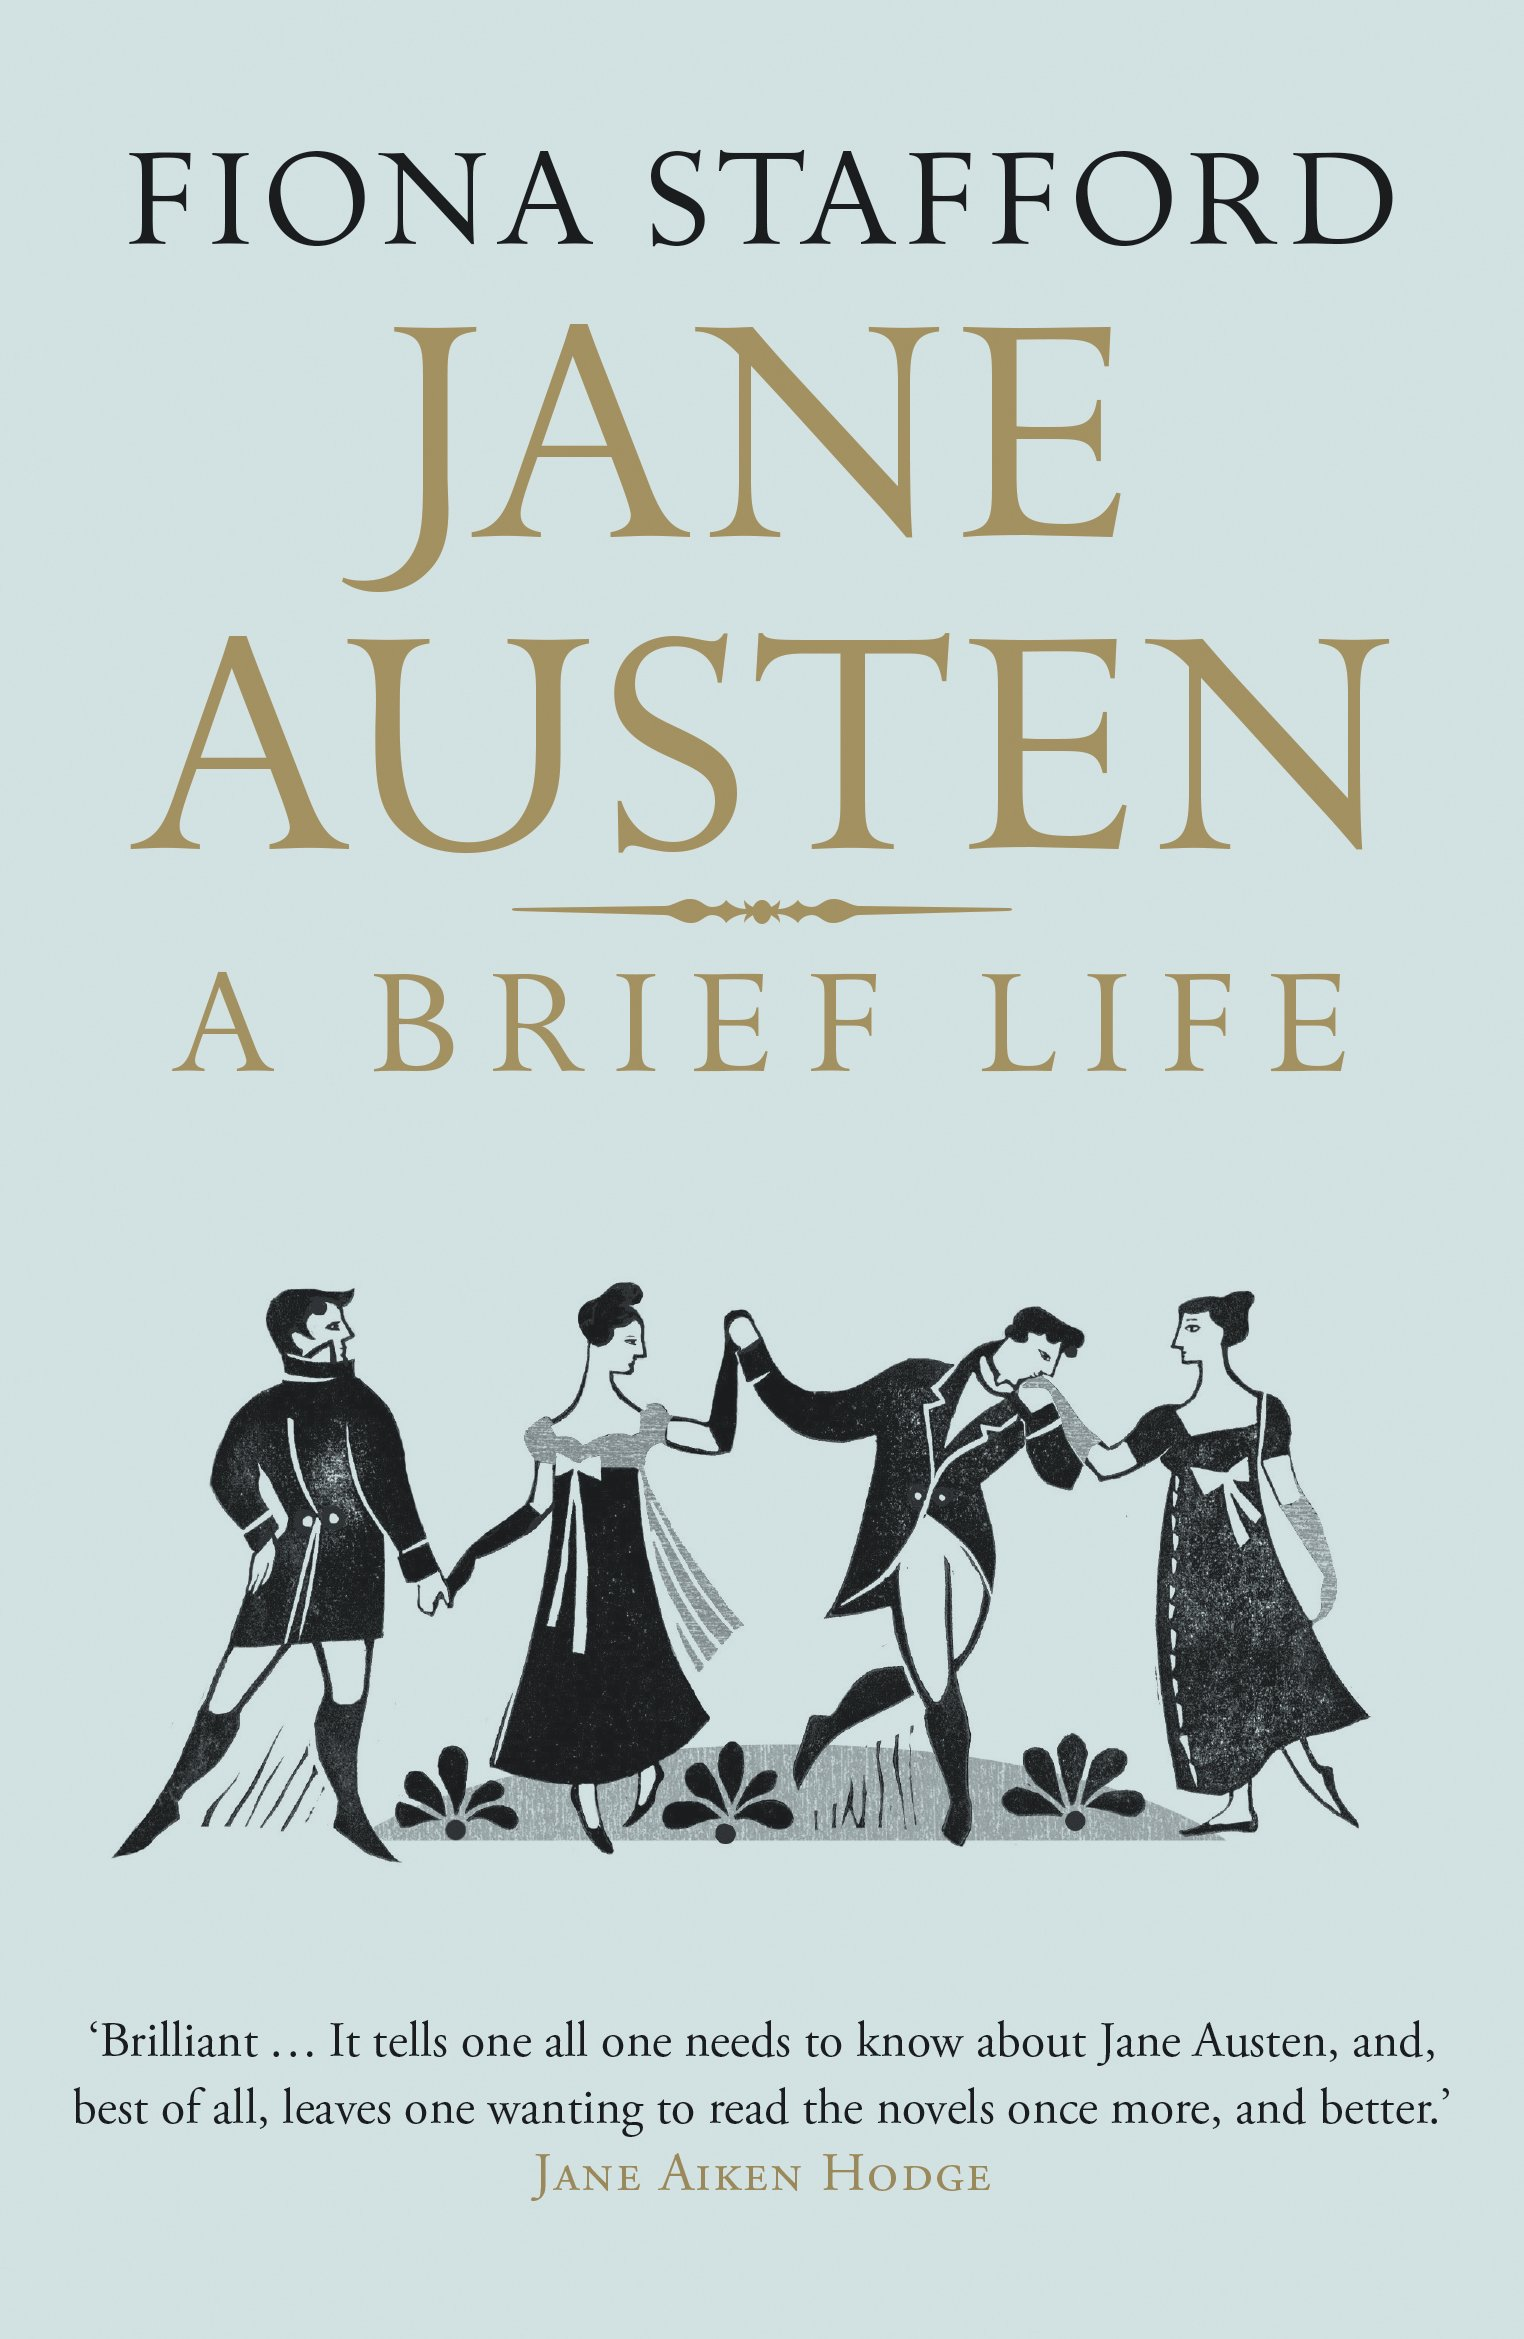 Jane Austen A Brief Life, by Fiona Stafford (2017)